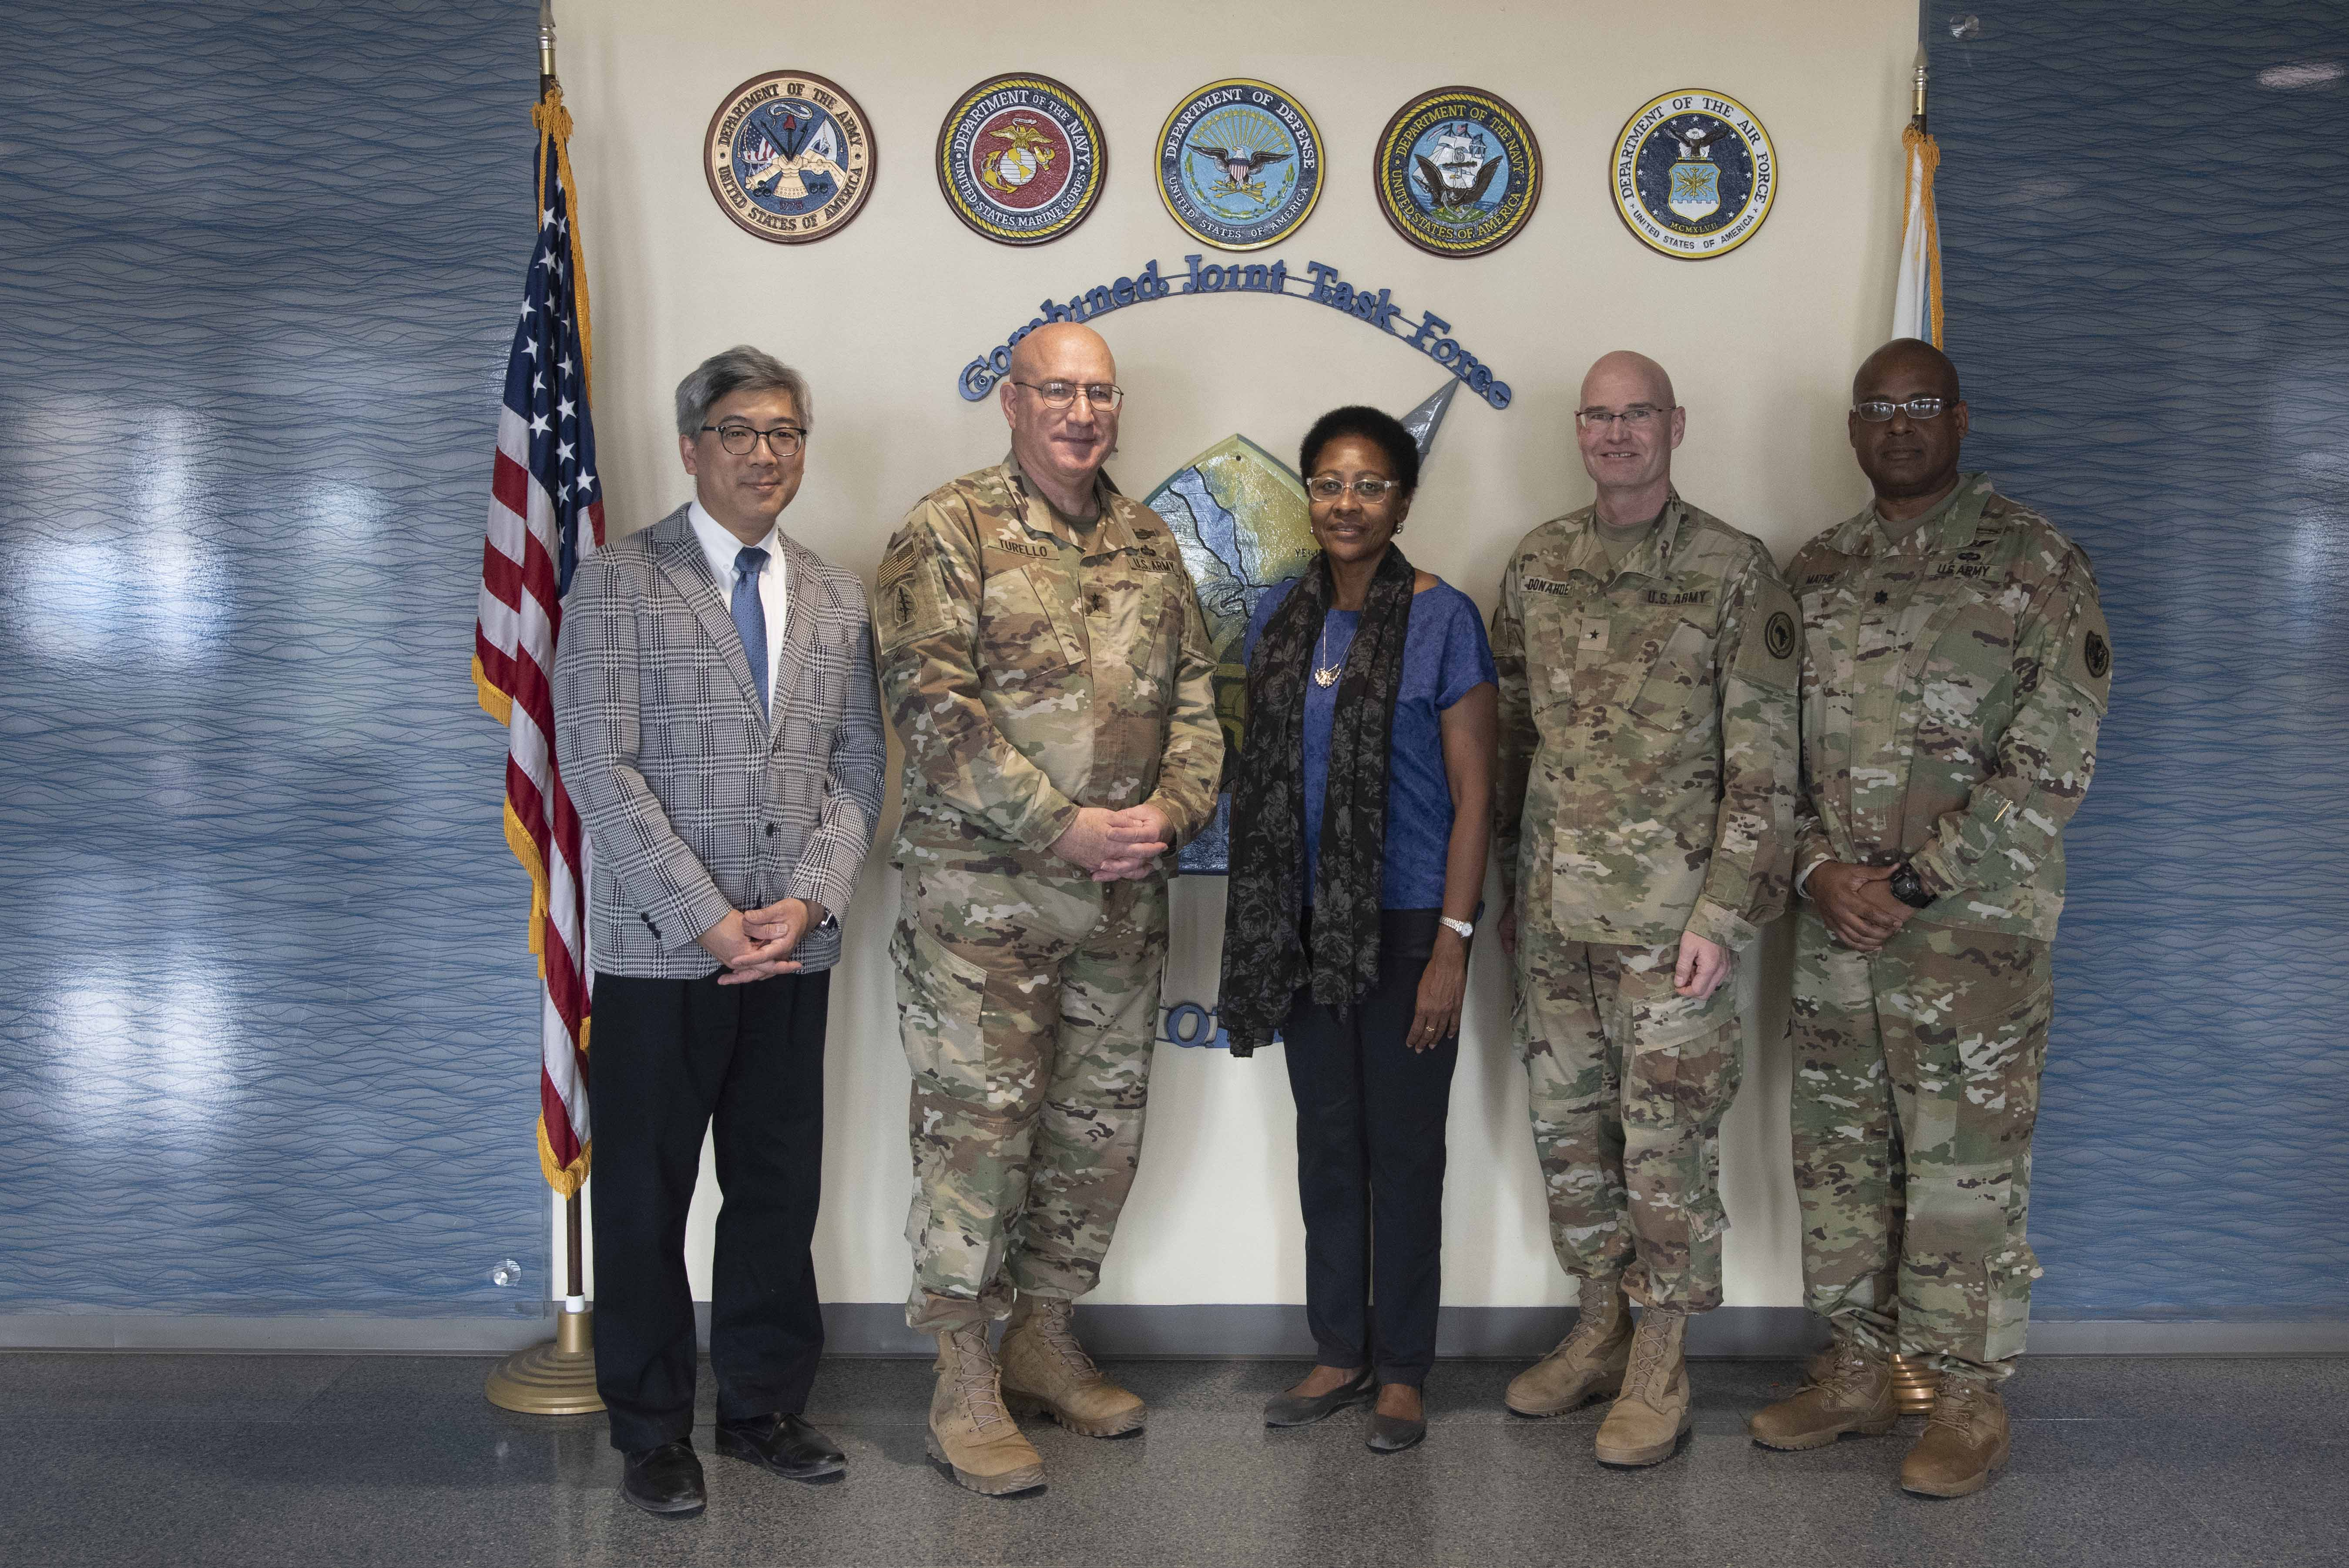 U.S. Army Maj. Gen. Michael D. Turello, center left, commanding general of Combined Joint Task Force-Horn of Africa (CJTF-HOA), welcomes Ambassador Eunice S. Reddick, Chargé d'affaires of the U.S. Embassy to Burundi, at Camp Lemonnier, Djibouti, Jan. 31, 2020. Reddick visited to learn more about the CJTF-HOA mission. (U.S. Air Force photo by Tech. Sgt. Ashley Nicole Taylor)